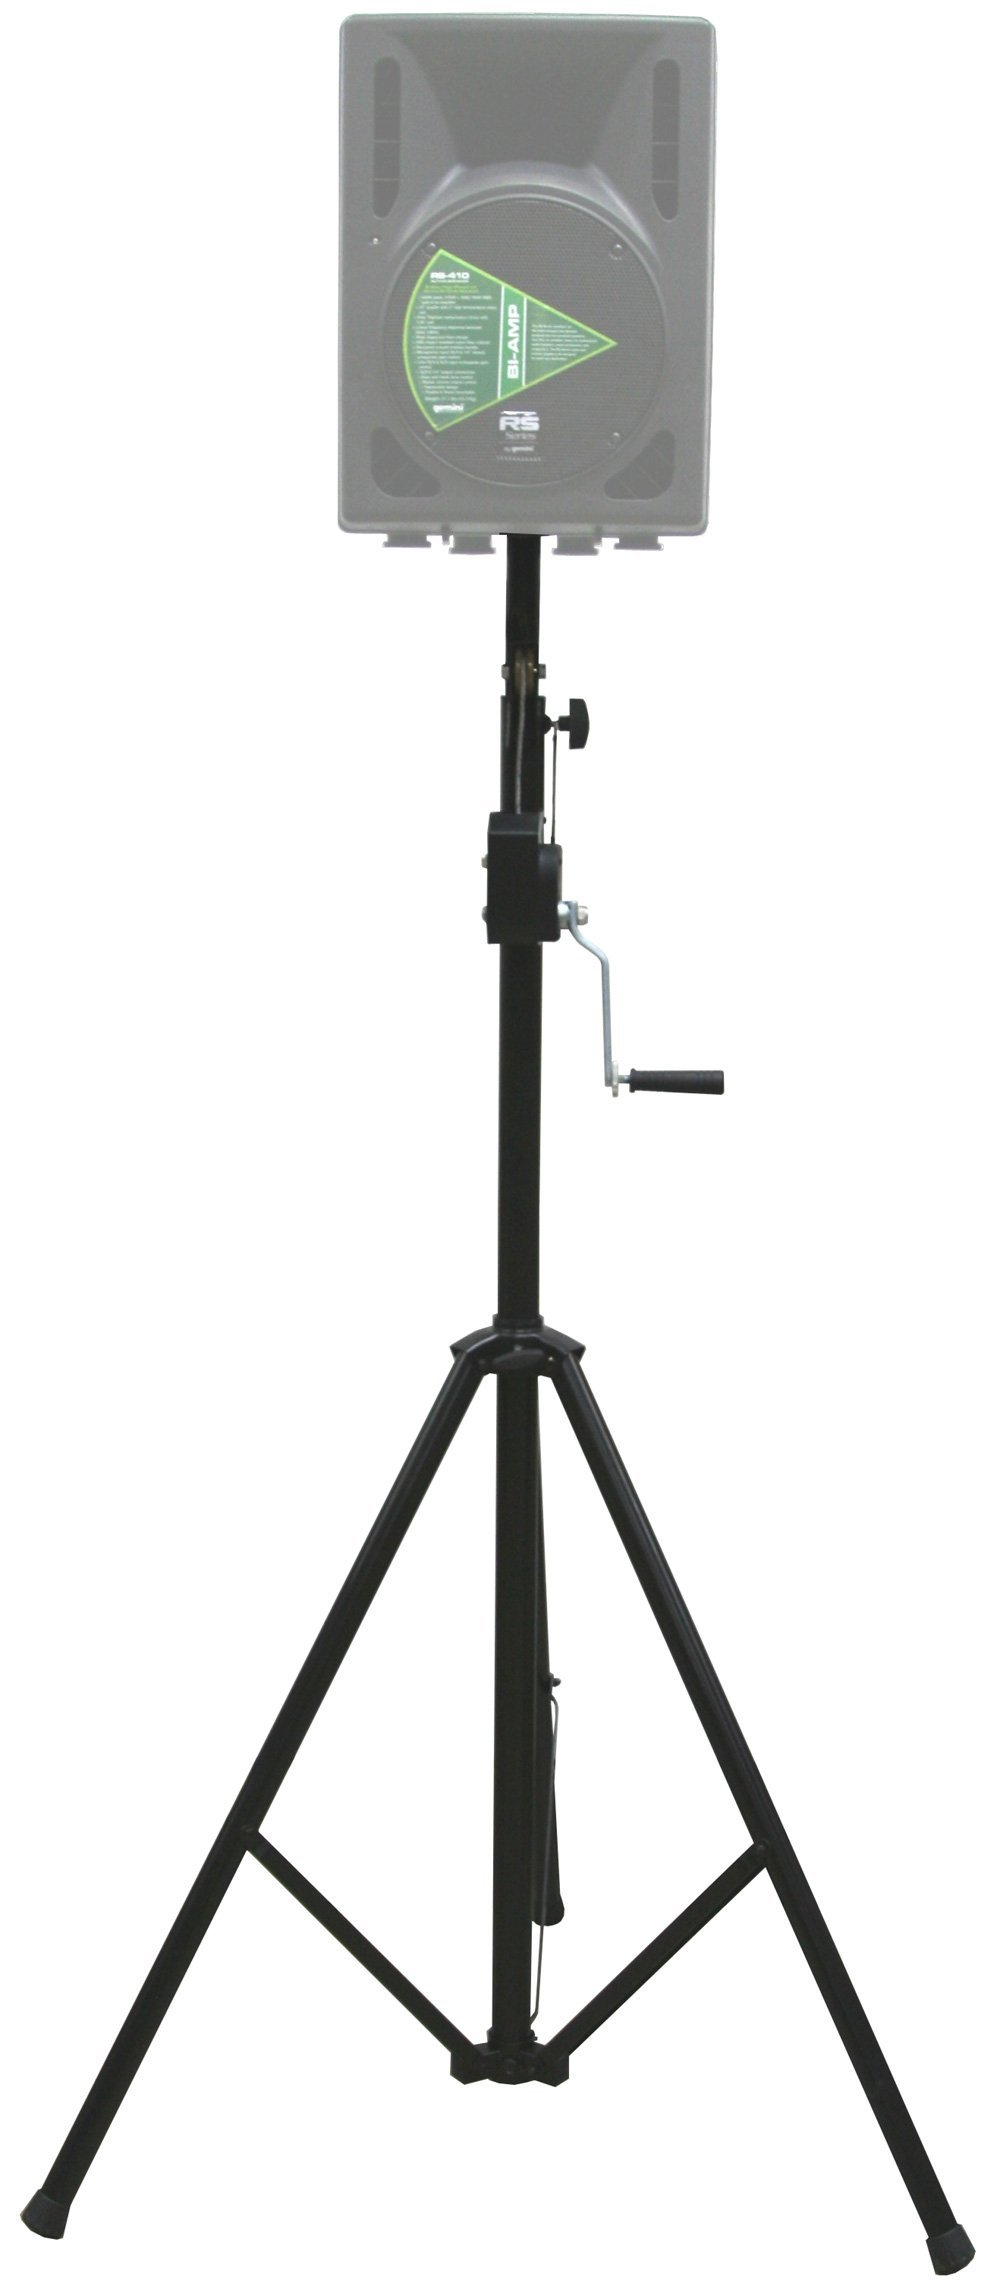 ASC Pro Audio Mobile DJ Light Stand 10 Foot Height Crank Lighting or Speaker Tripod by American Sound Connection